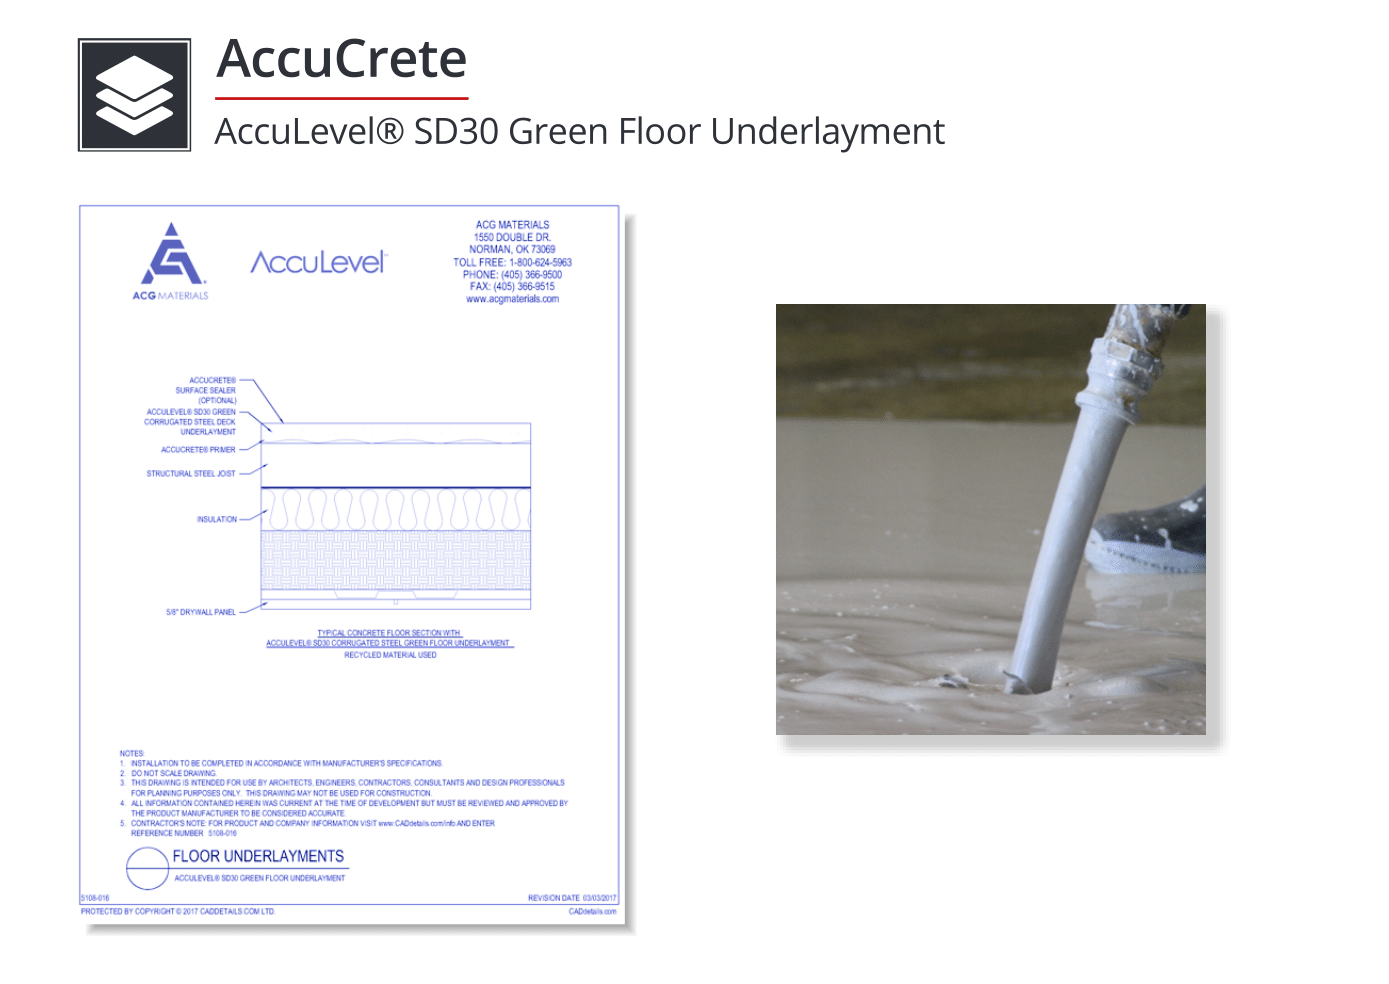 Accucrete-AccuLevel-Green-Floor-Underlayment-CADdrawing.png